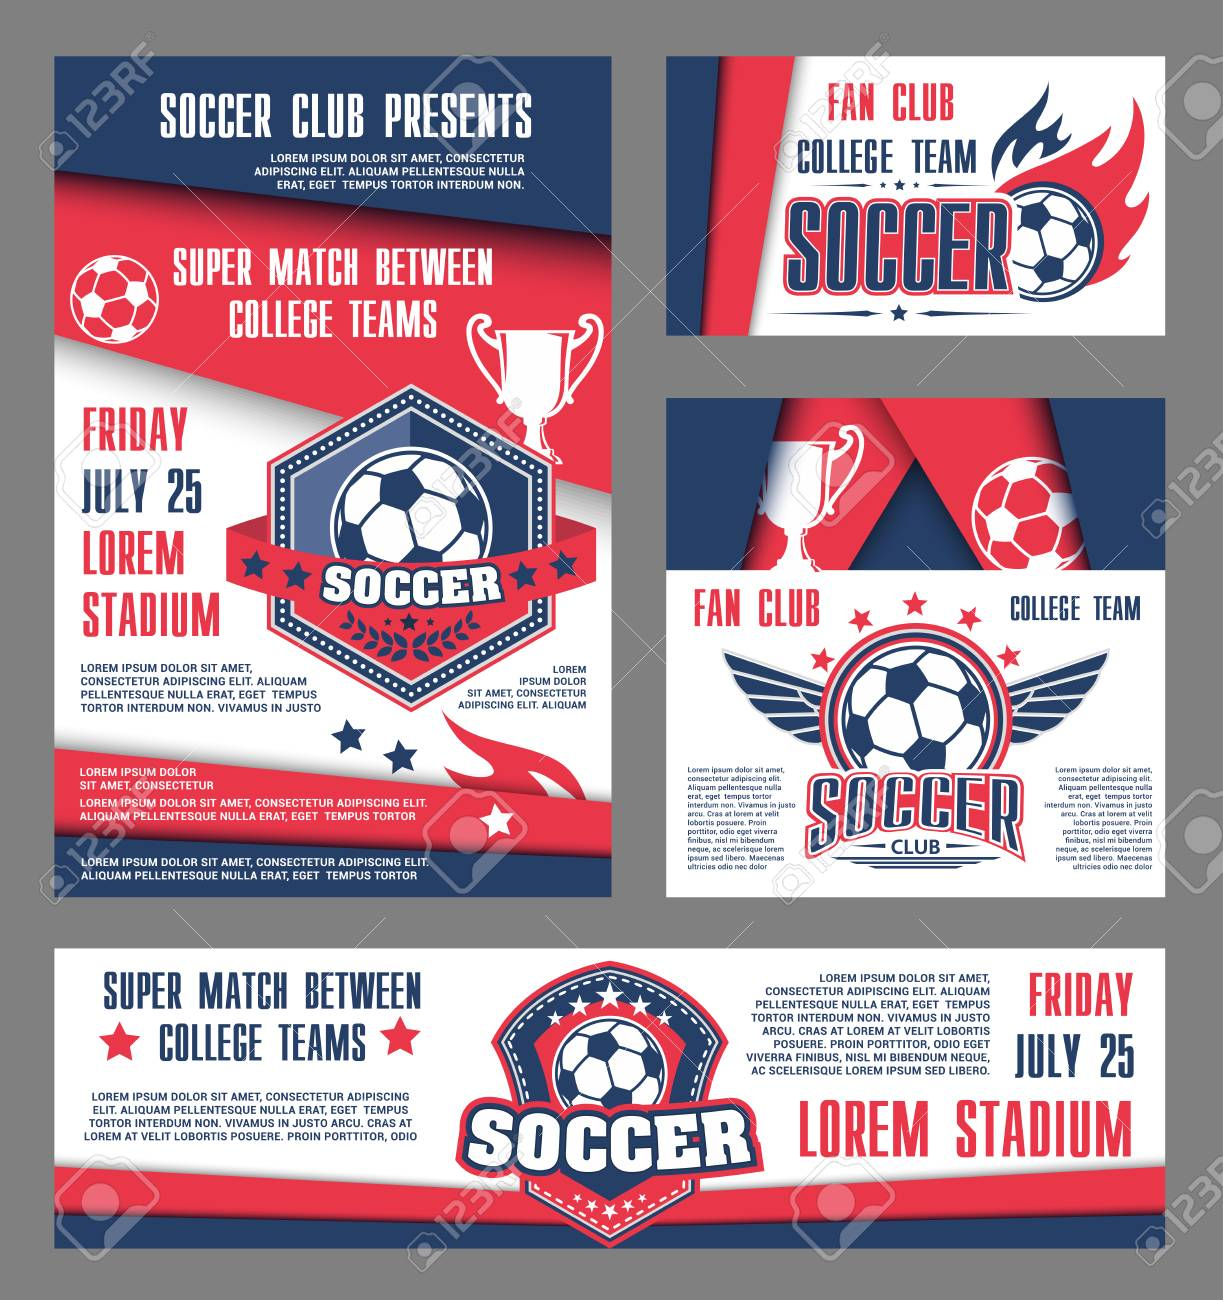 vector soccer team college football match posters illustration